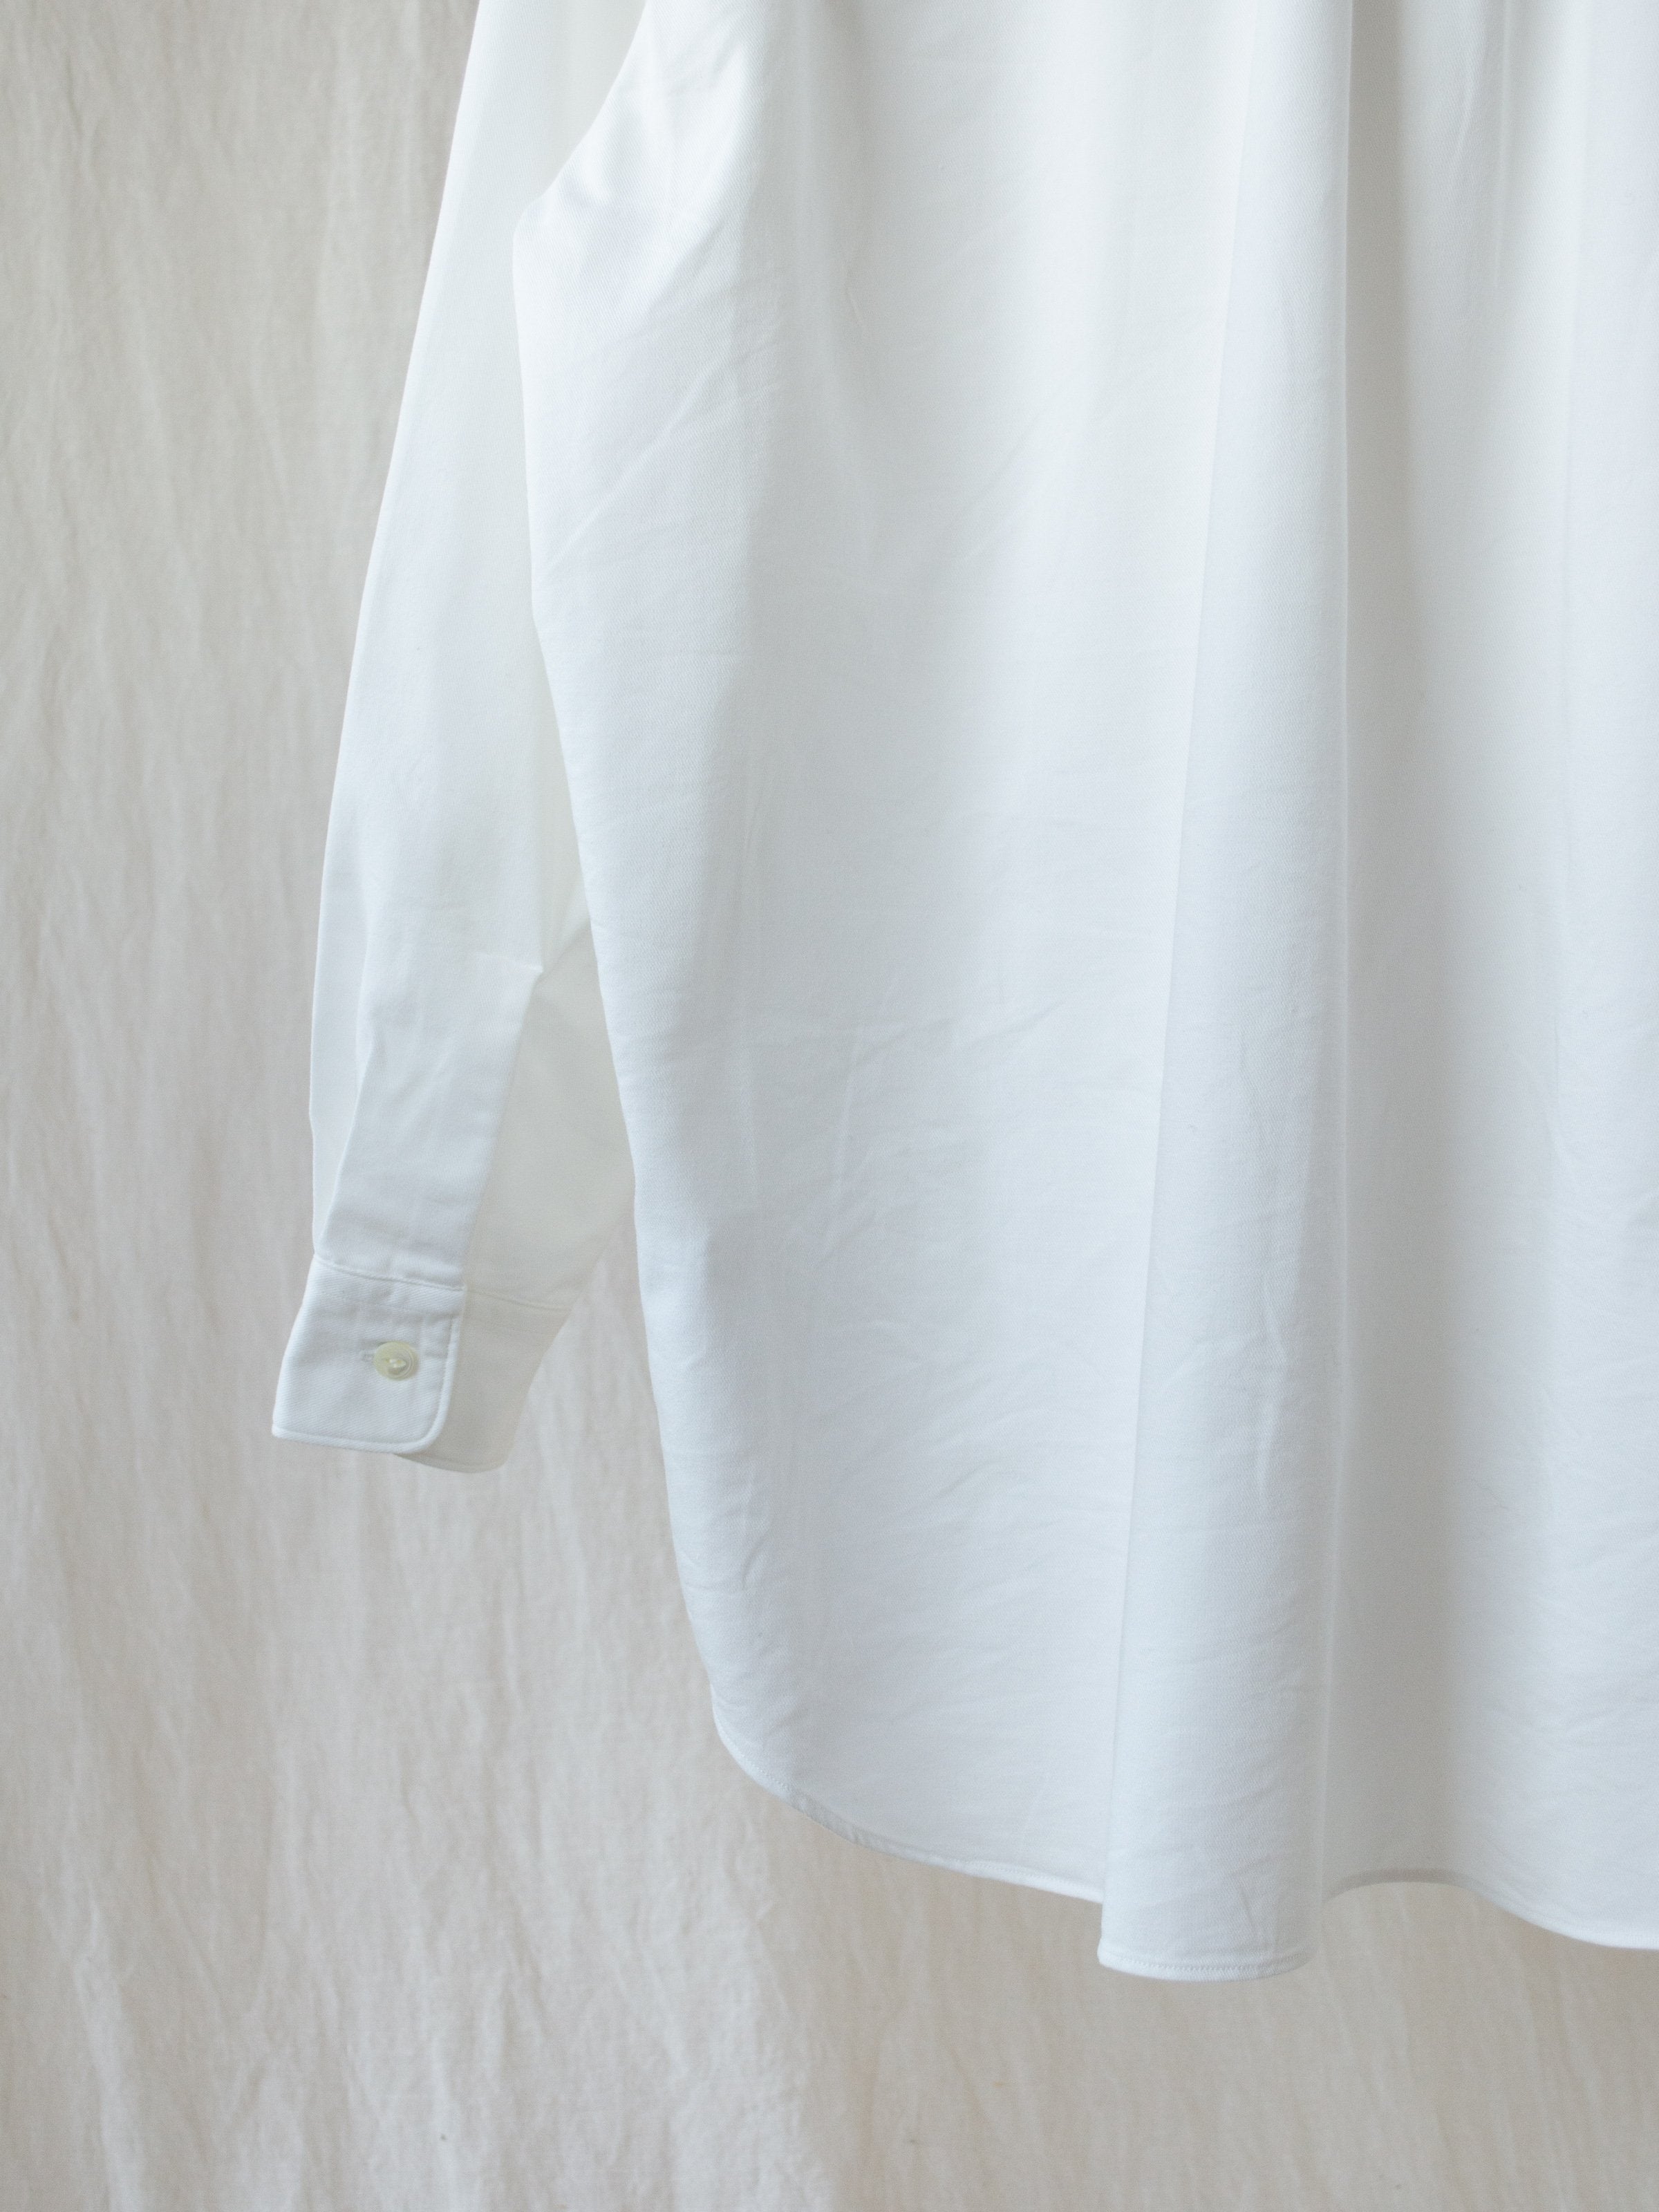 Namu Shop - Fujito B/S Stand Collar Shirt